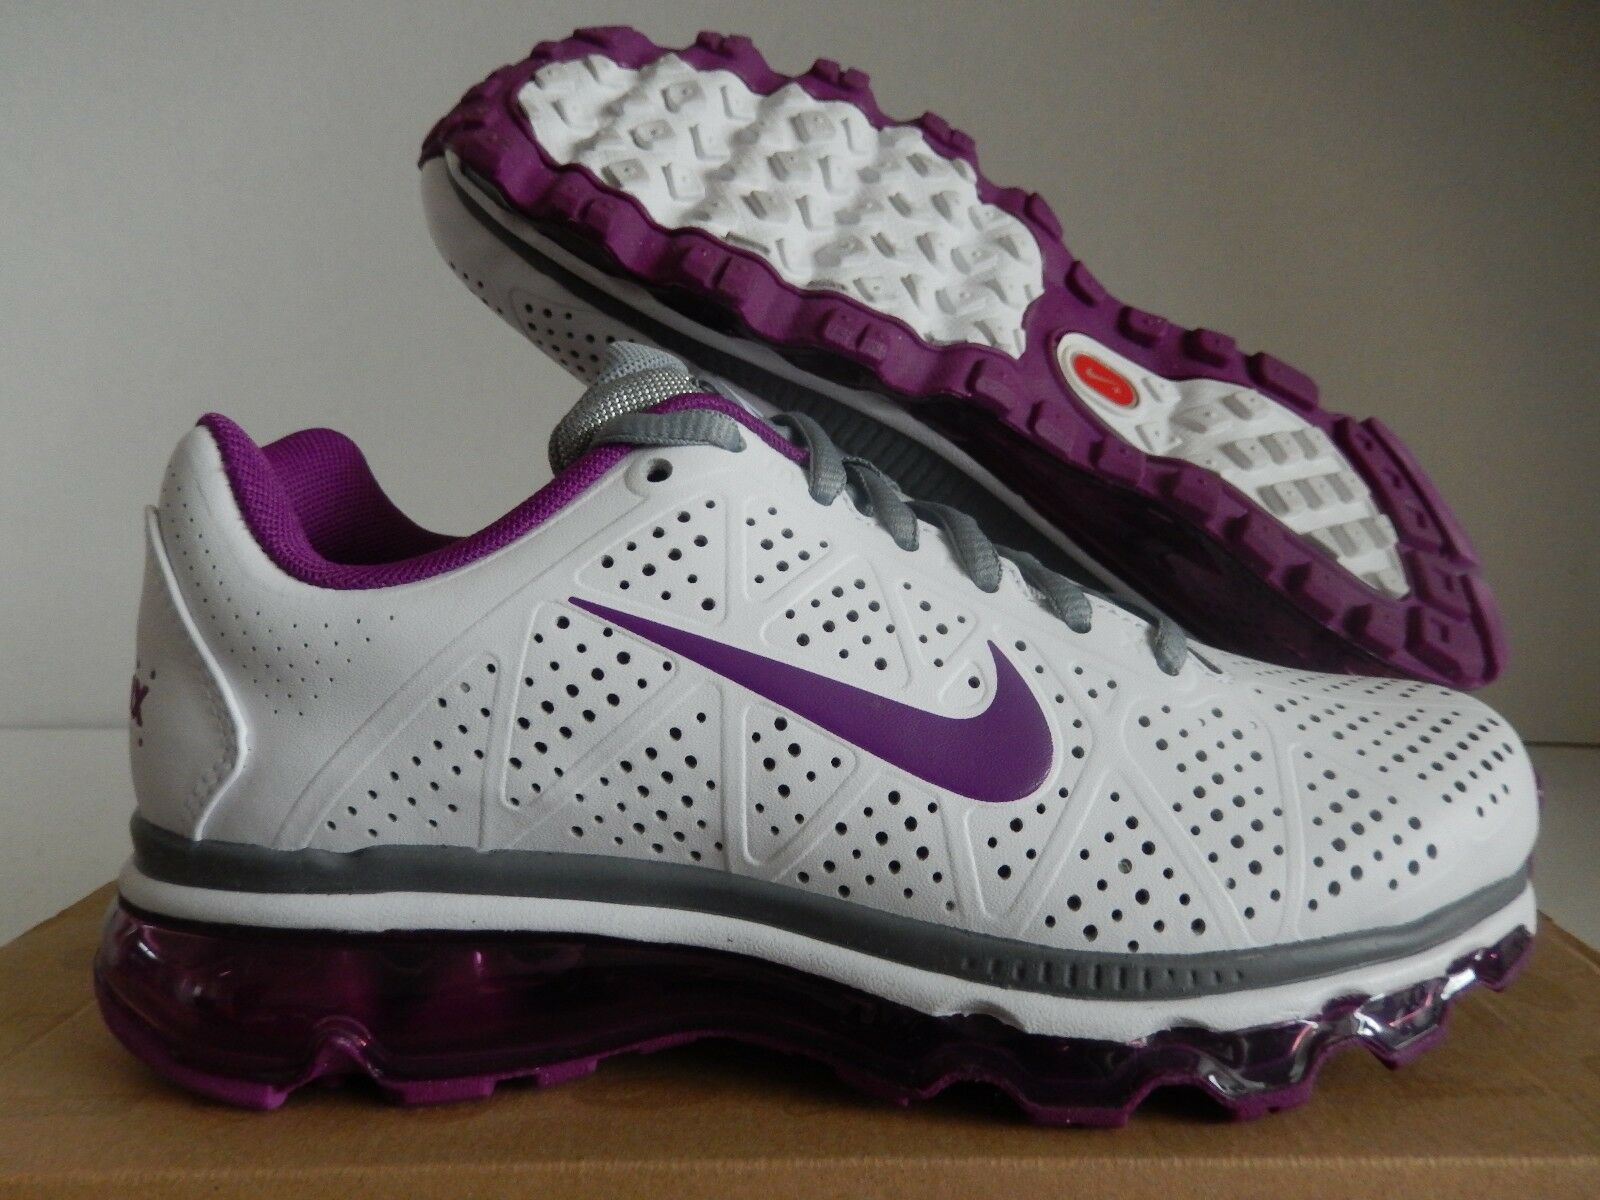 WMNS NIKE AIR MAX + 2011 LEA LEATHER WHITE-BOLD BERRY-GREY SZ 6.5 [456326-100]